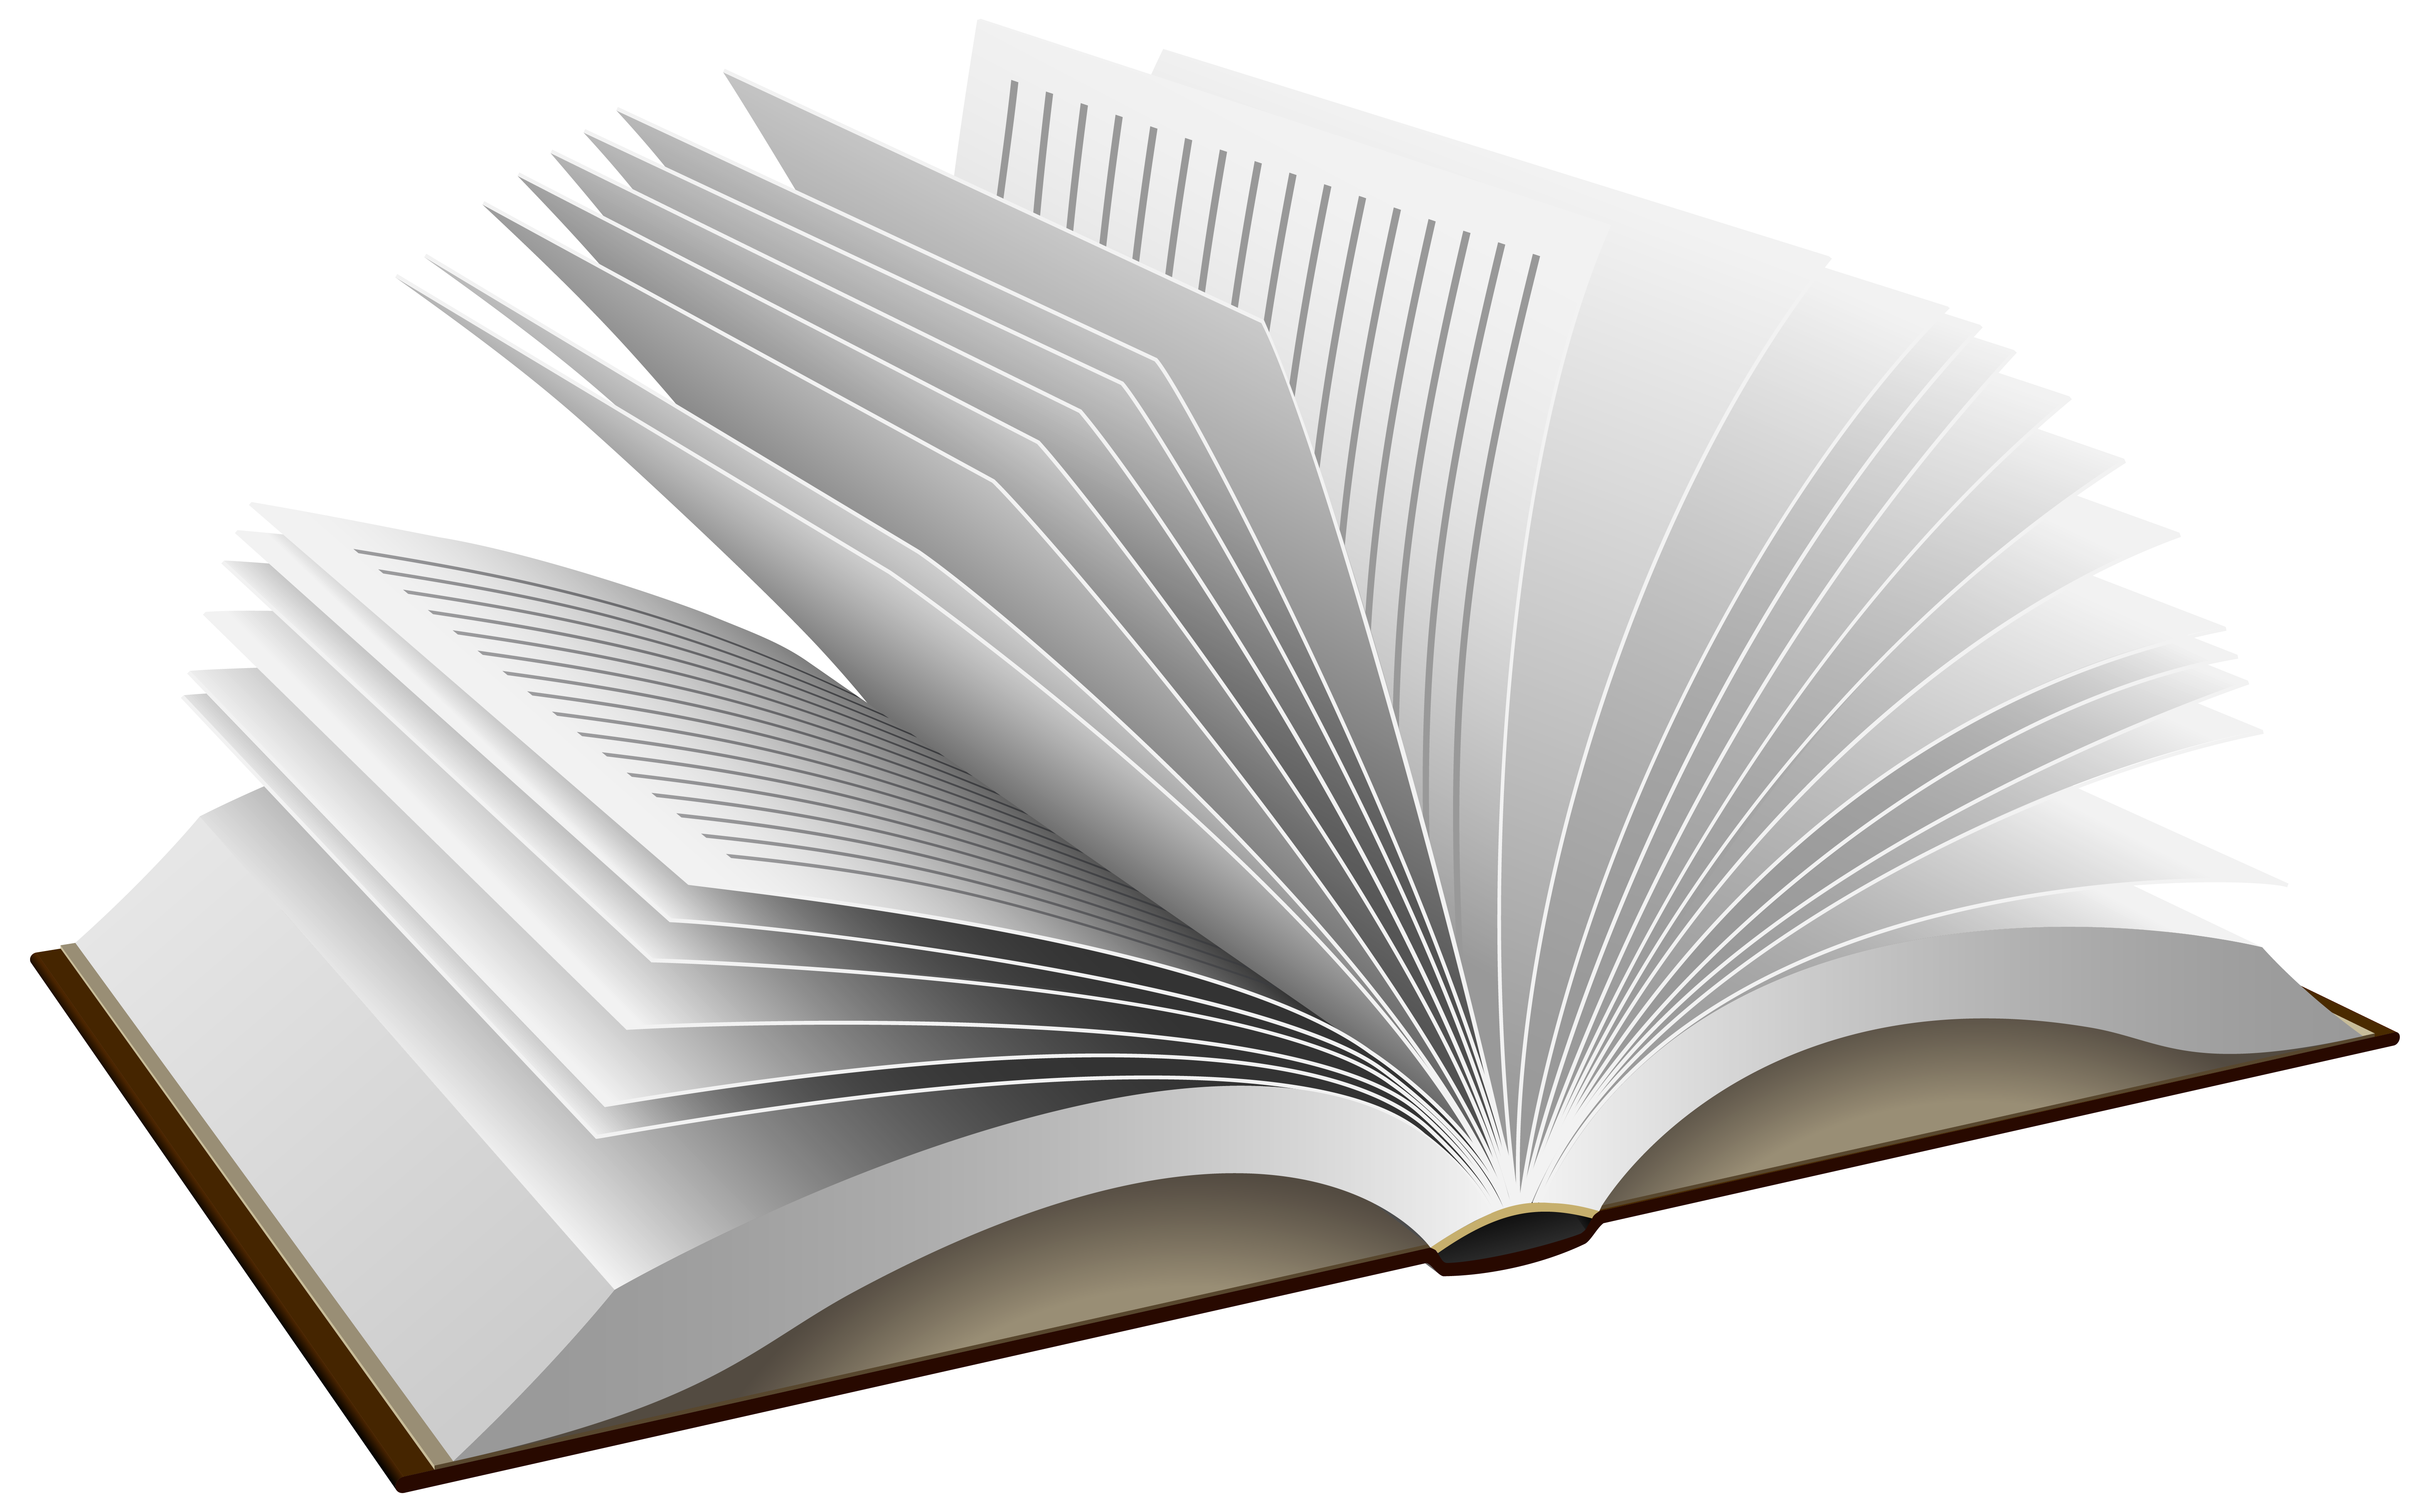 Book Png - Book PNG Clipart